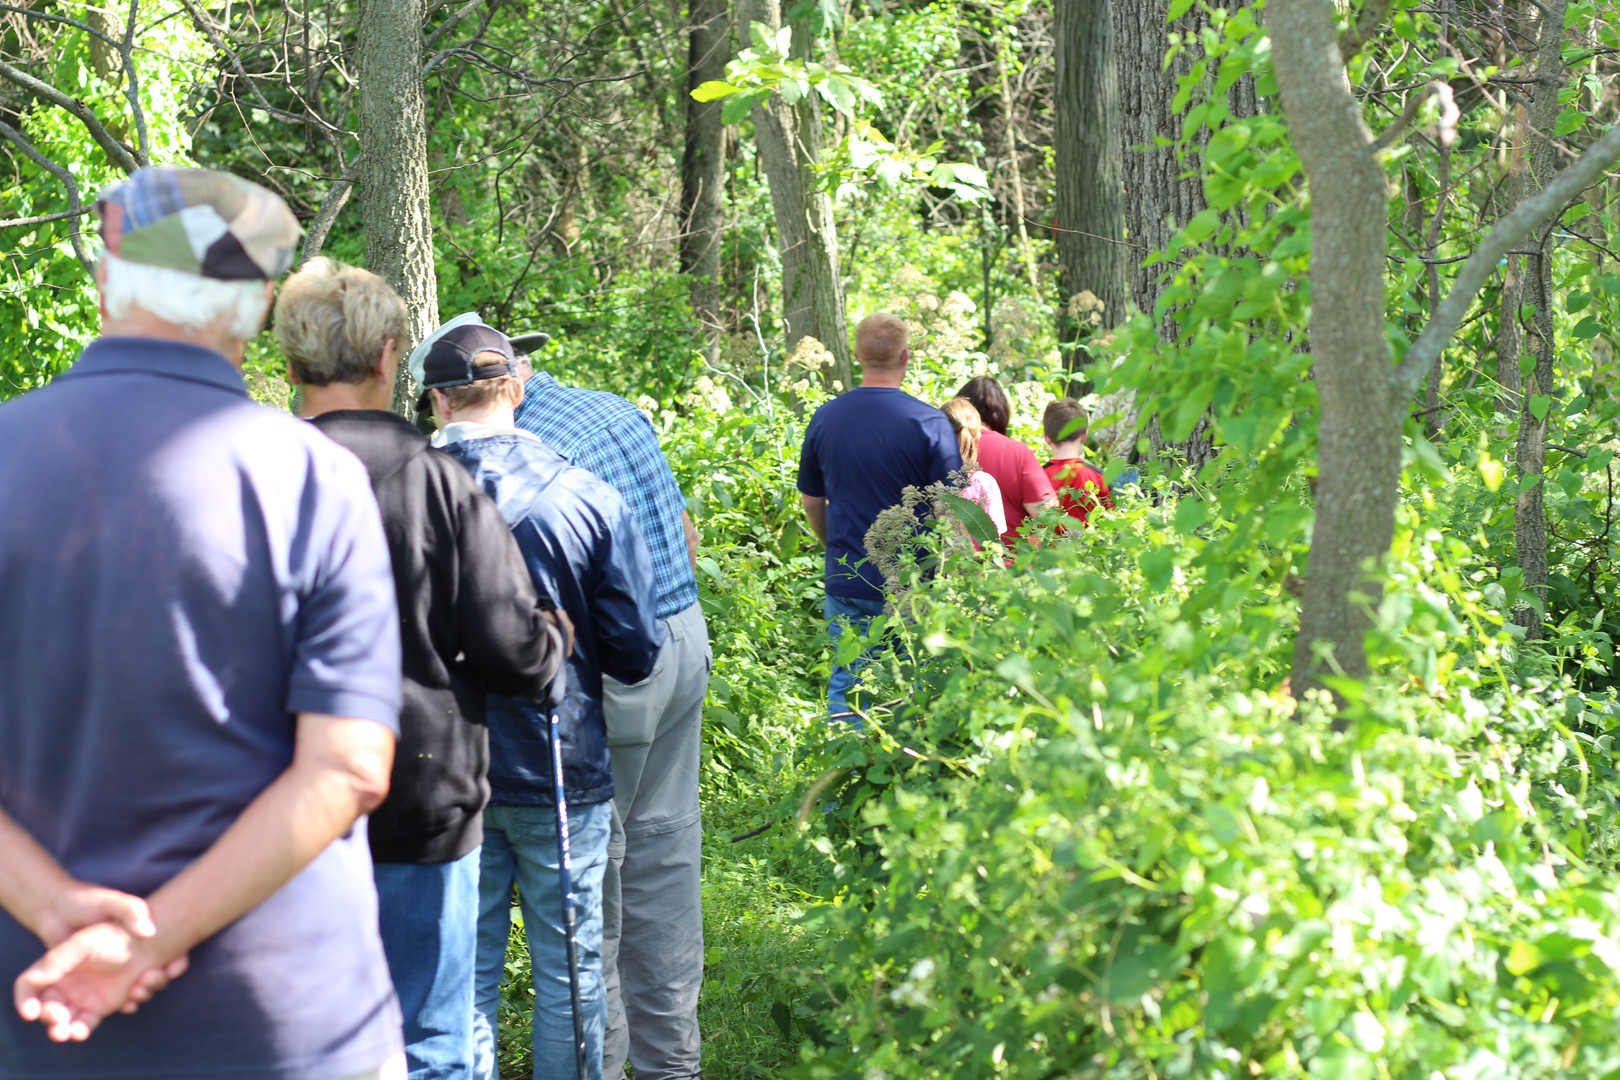 Hikers at Androne Woods pause to listen for the resident Scarlet Tananger.